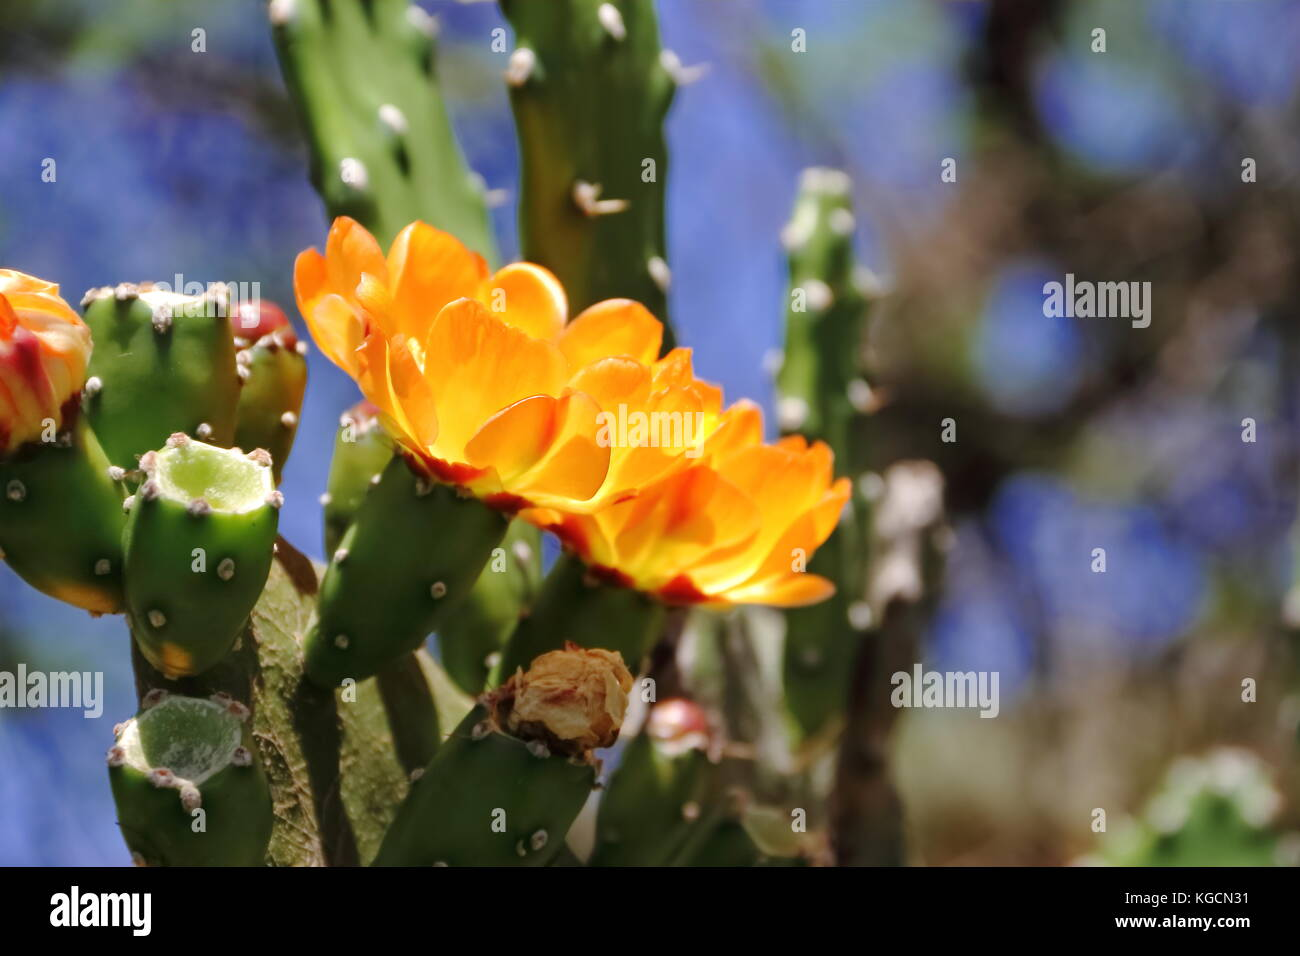 Pianta Grassa Fiori Gialli.Cactus And Succulents With Yellow Flowers In Spring Stock Photo